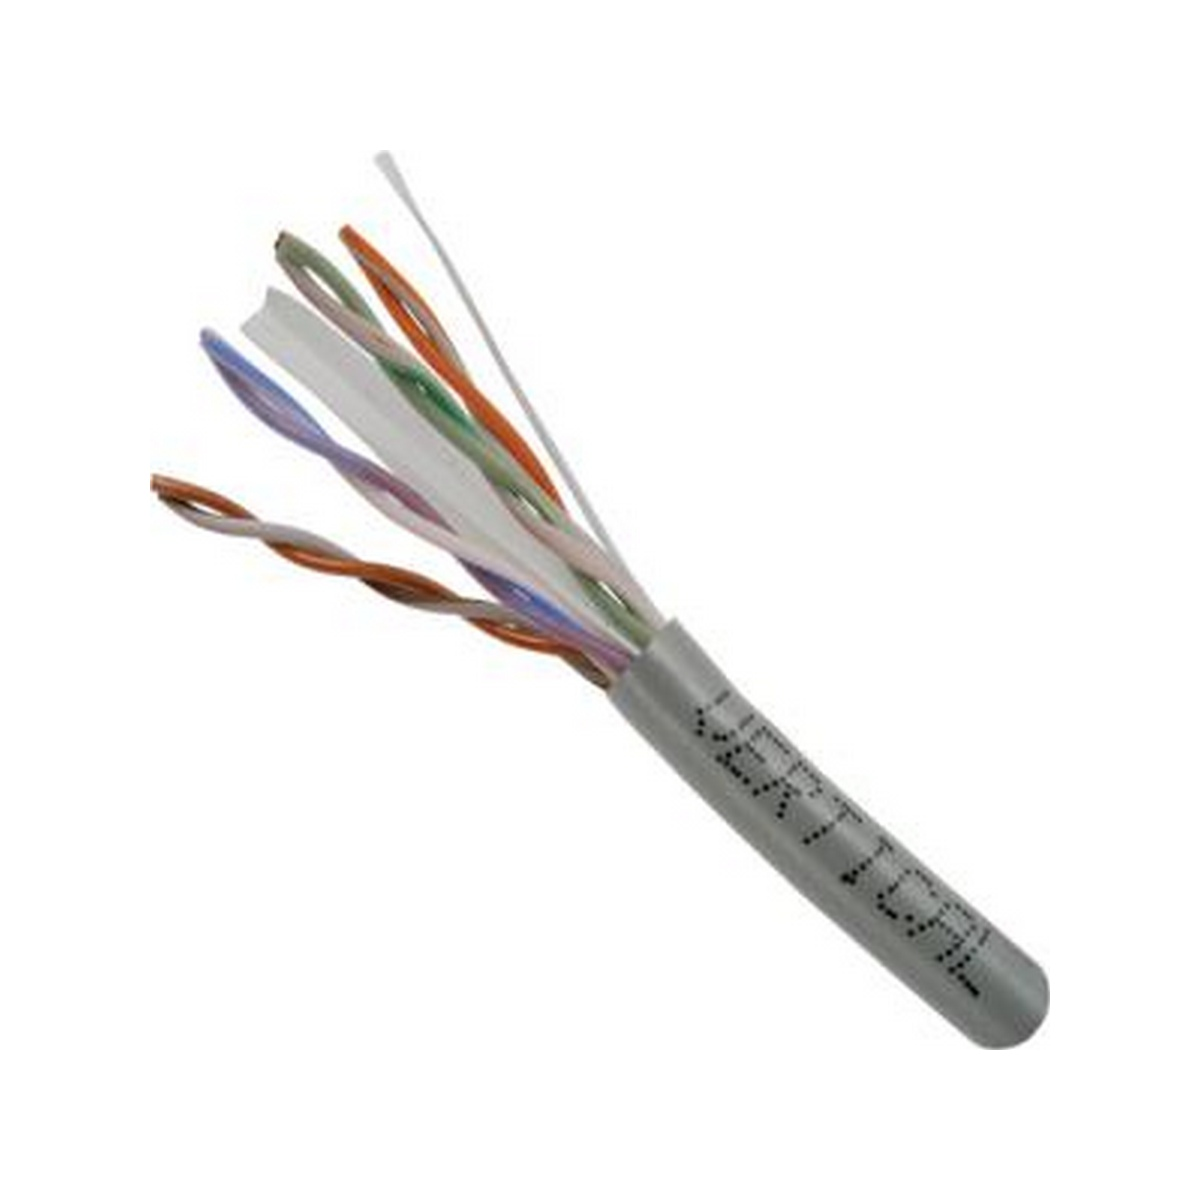 CAT 6 UTP, 1000FT, Gray PVC Pull box, CMR Rated